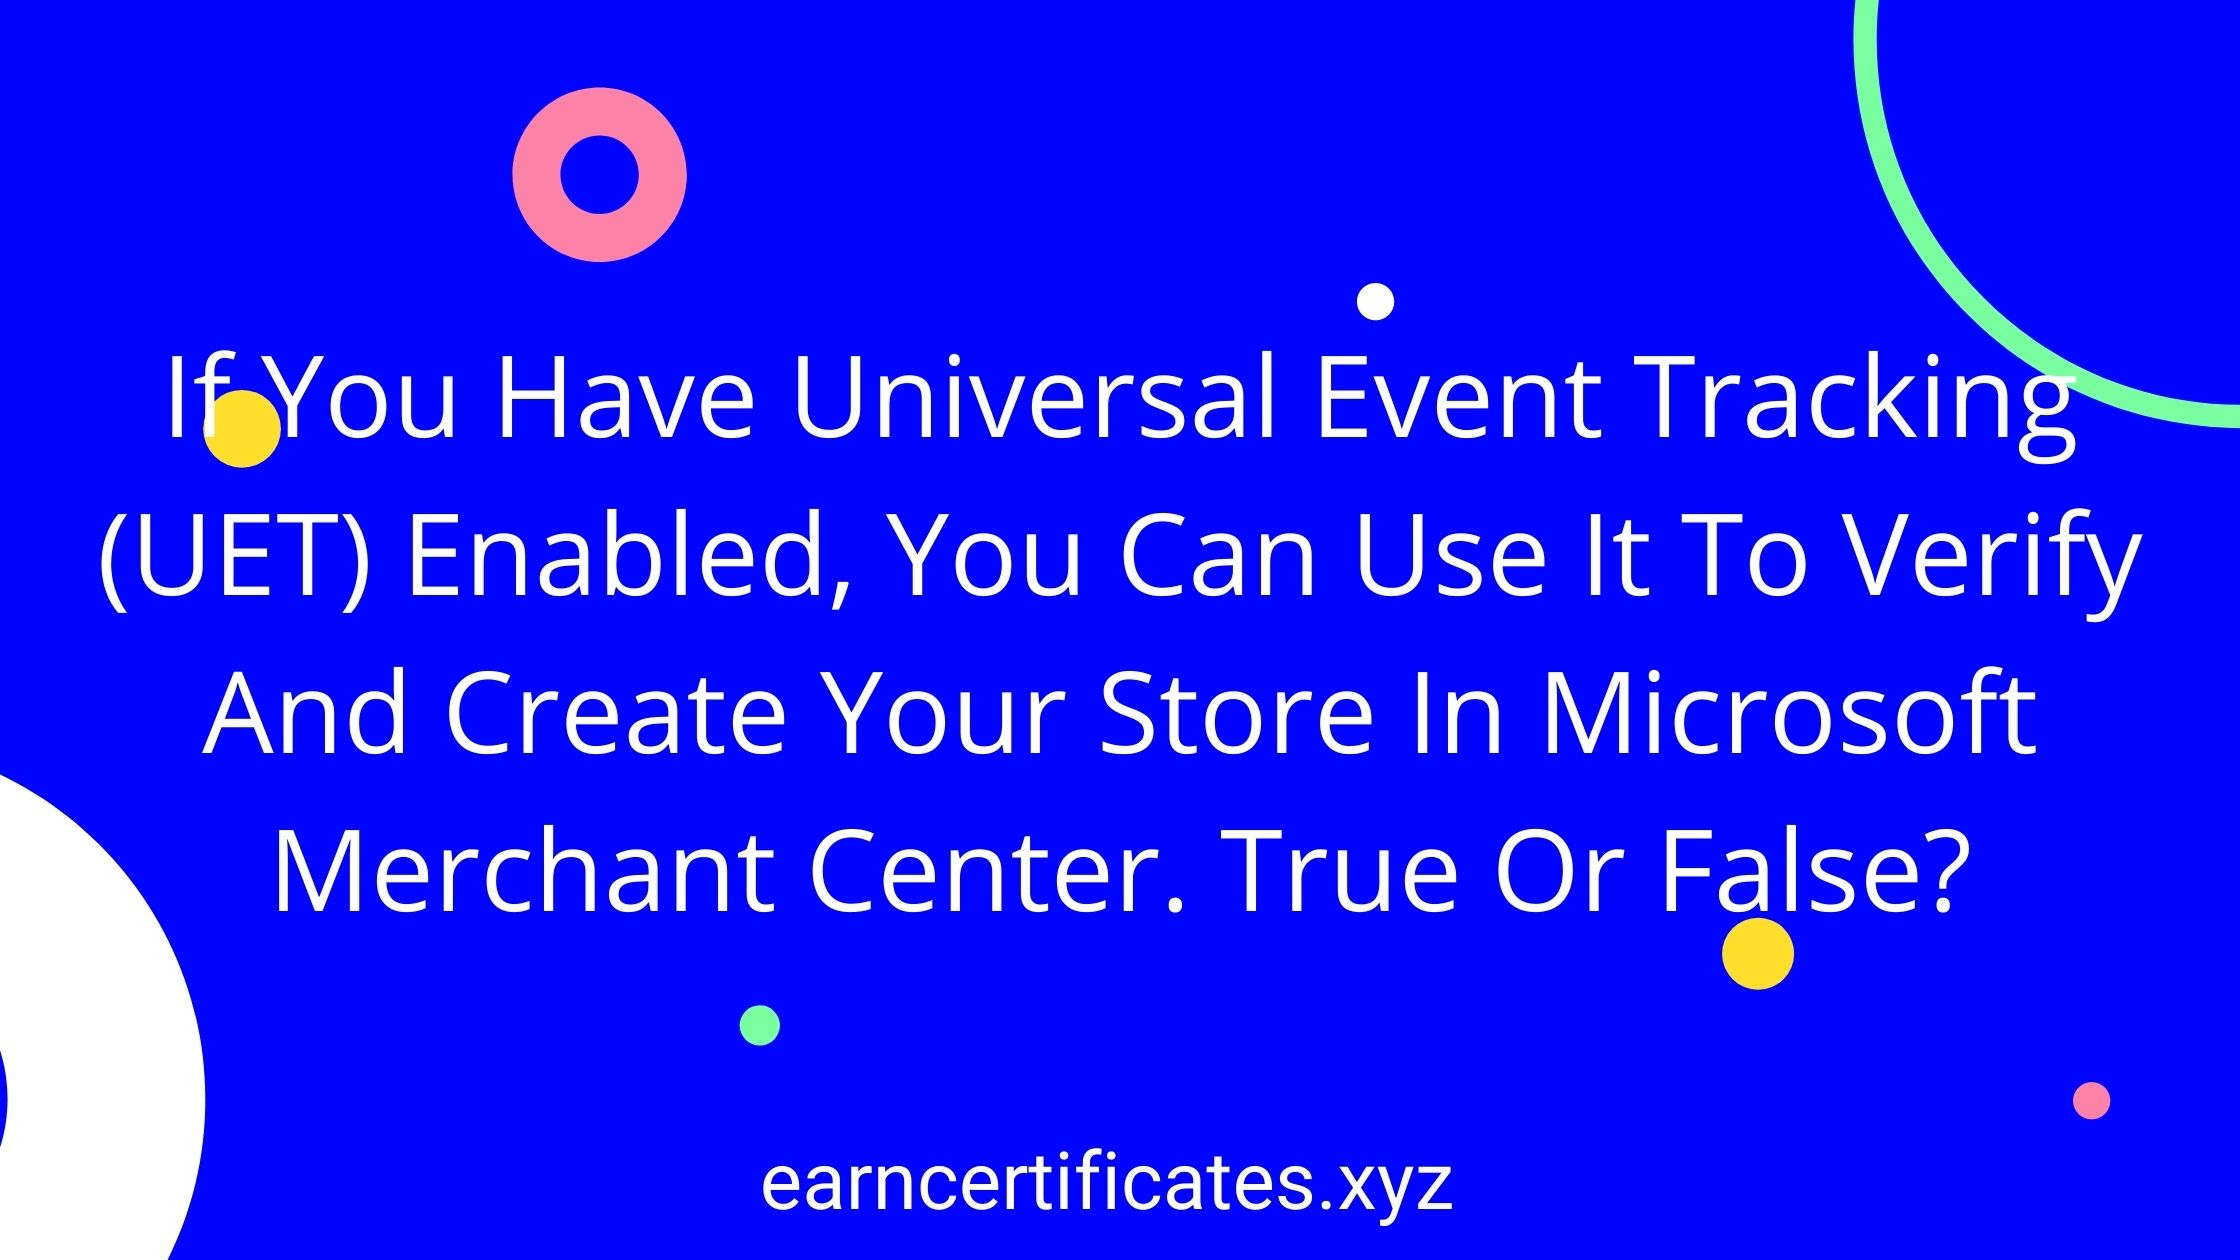 If You Have Universal Event Tracking (UET) Enabled, You Can Use It To Verify And Create Your Store In Microsoft Merchant Center. True Or False?